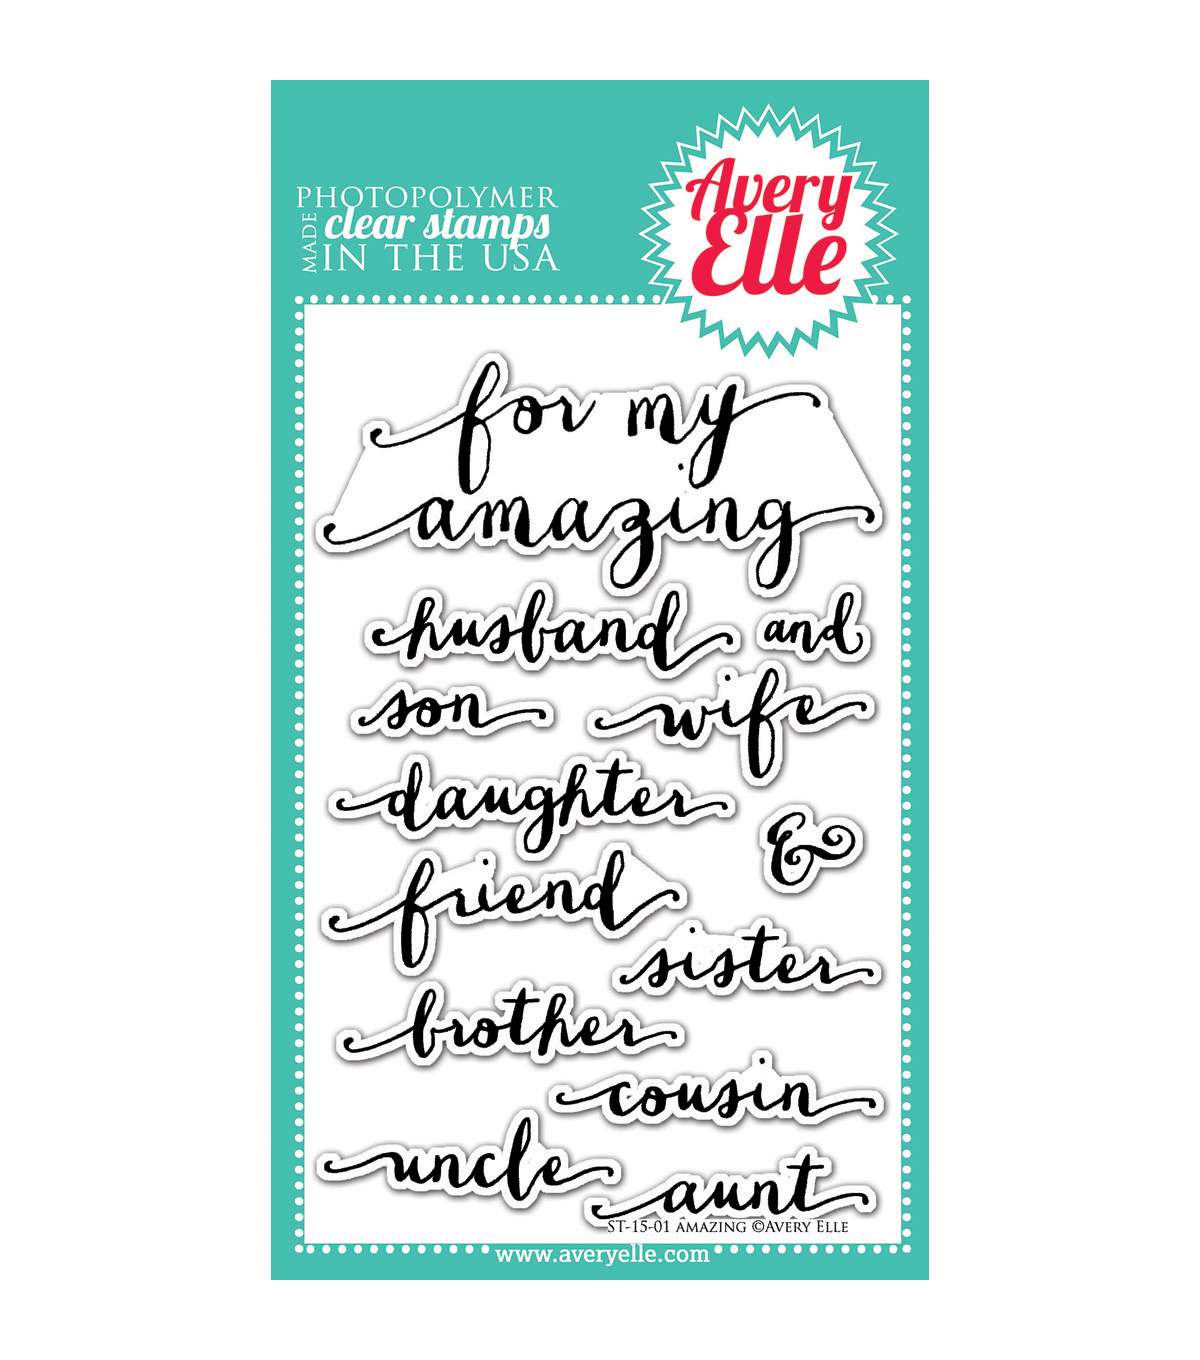 Avery Elle Amazing Clear Stamp Set 4\u0027\u0027x6\u0027\u0027